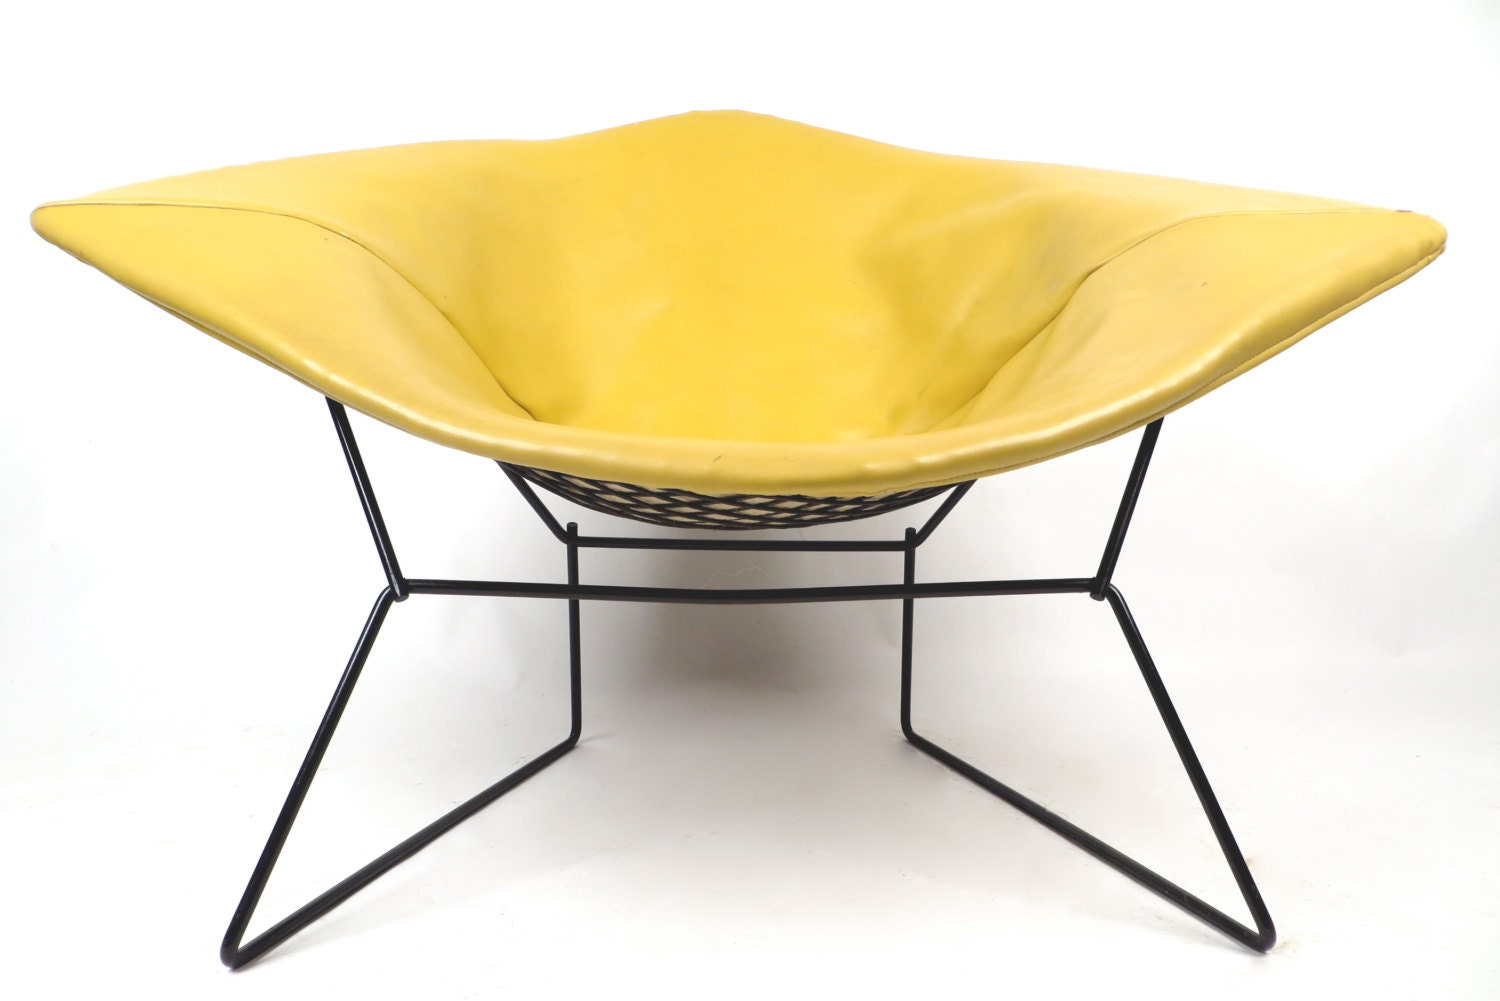 knoll bertoia large diamond chair with yellow cover reserved. Black Bedroom Furniture Sets. Home Design Ideas